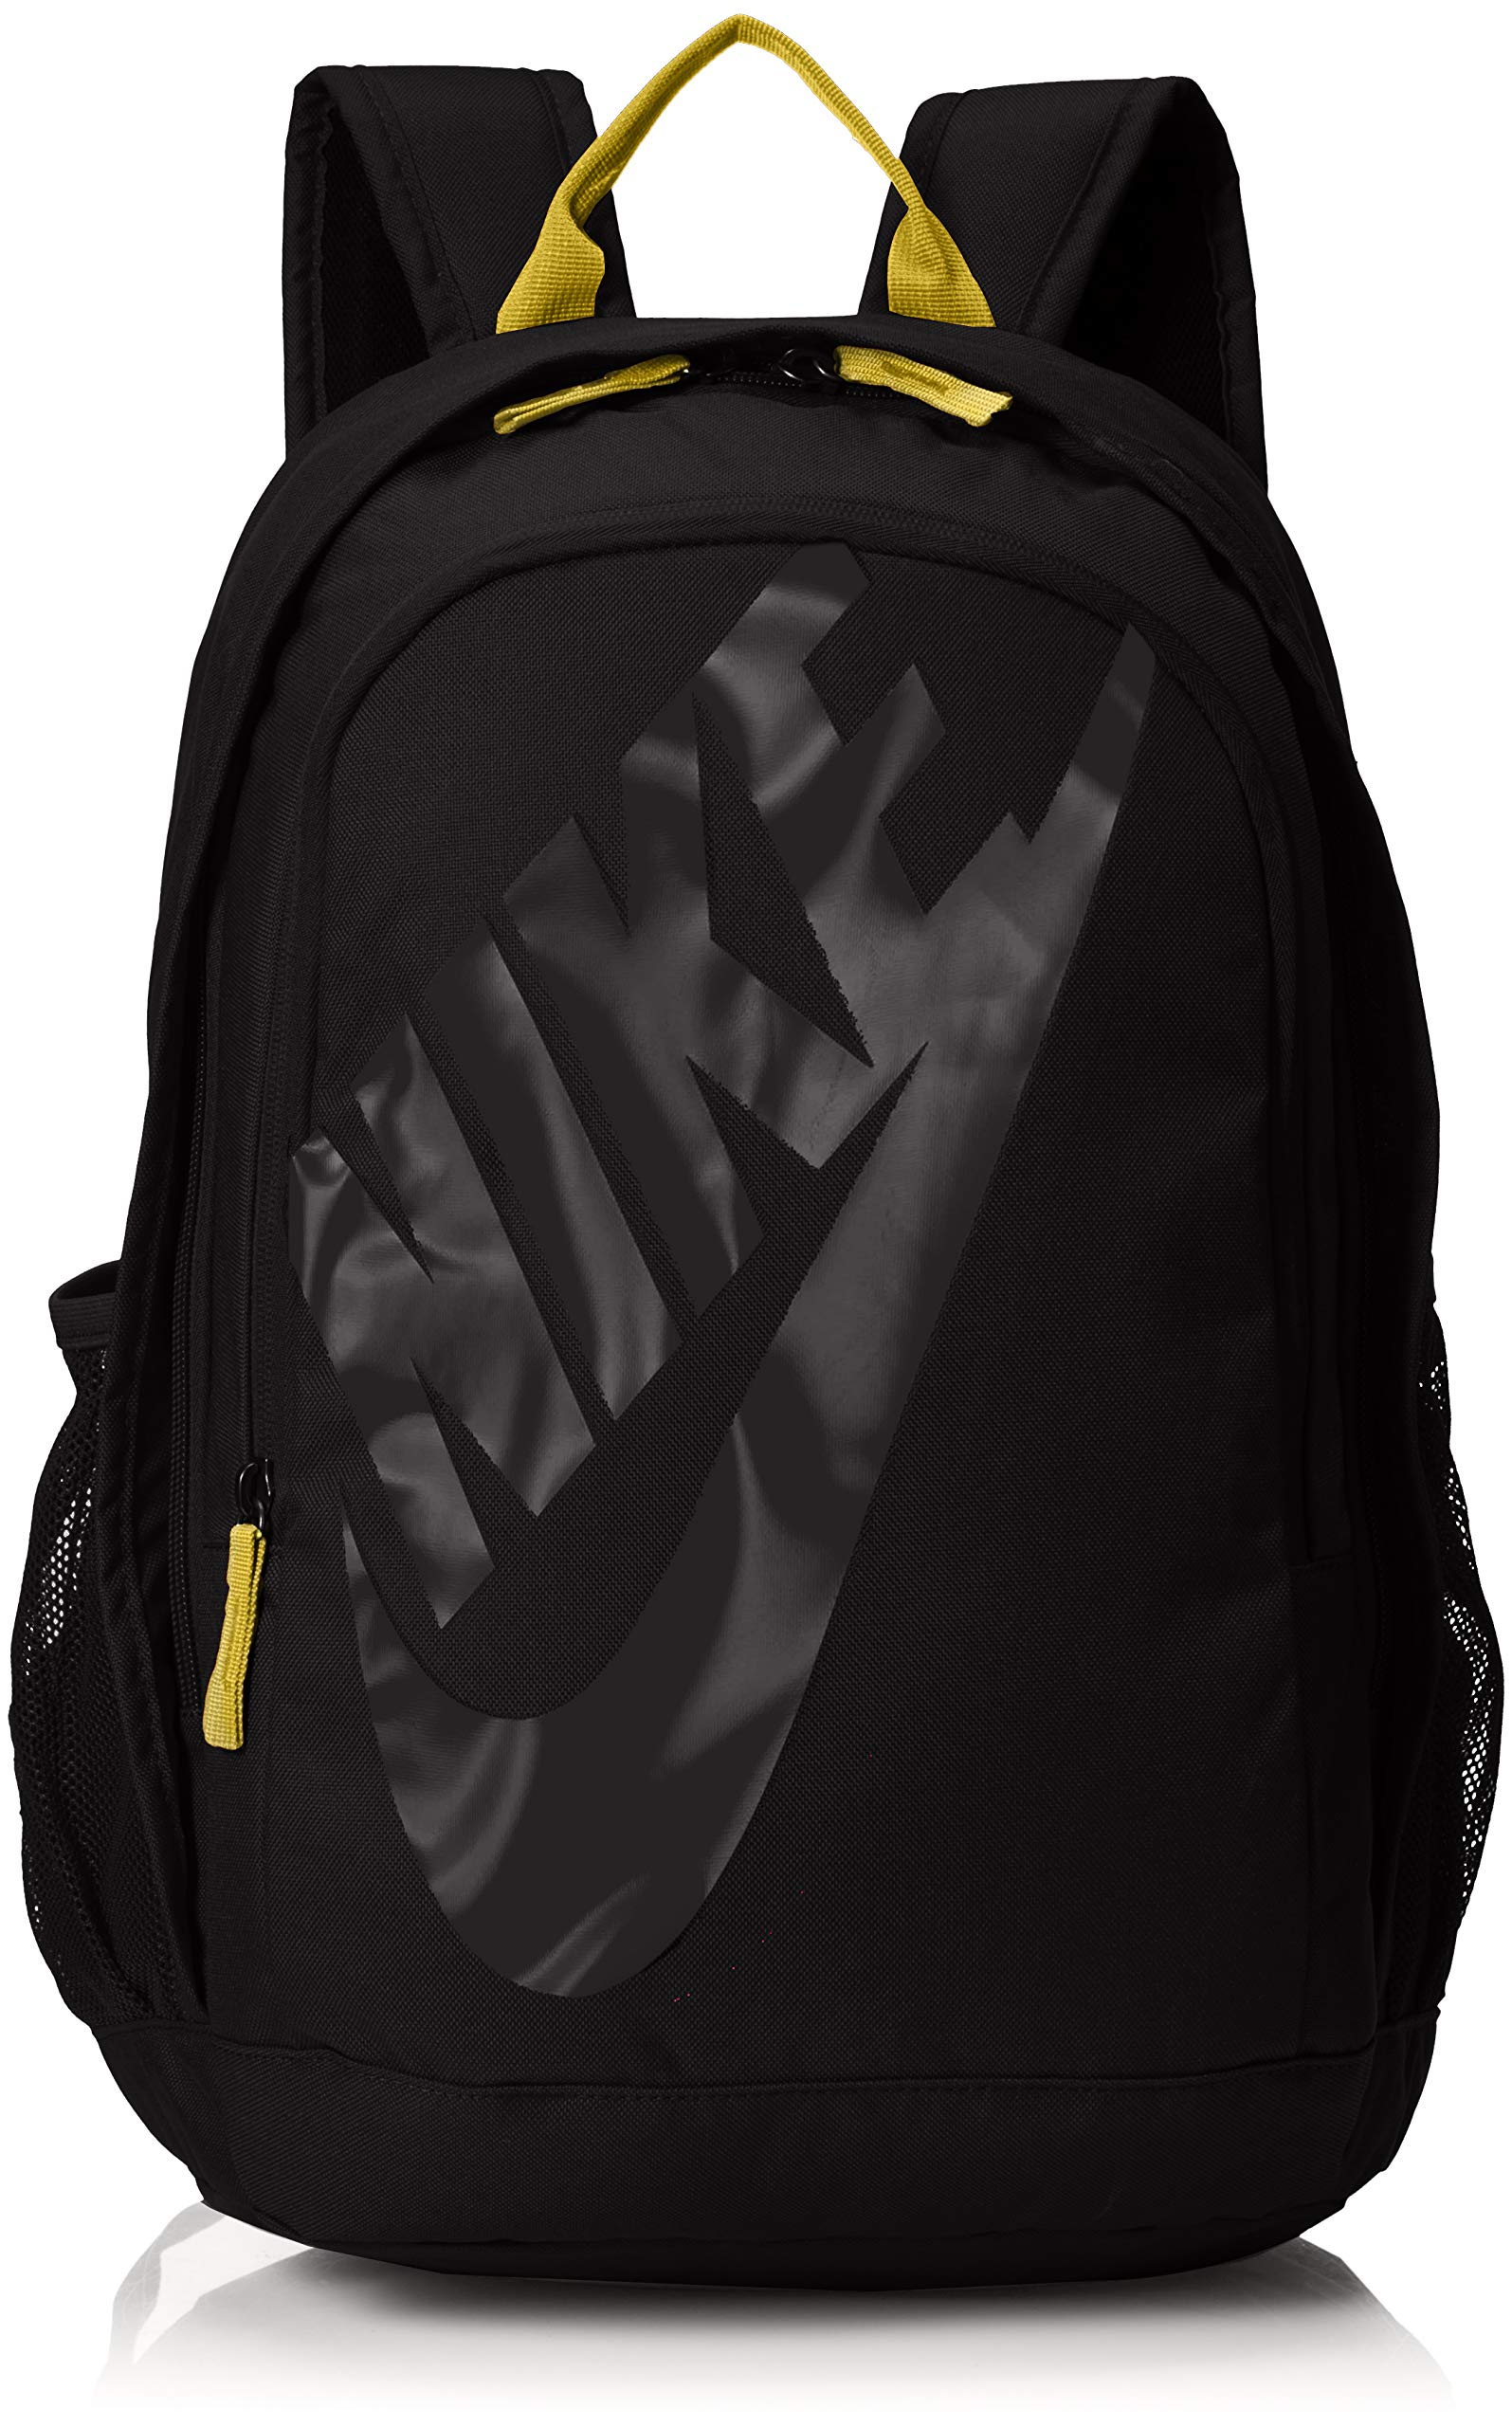 Nike Sportswear Hayward Futura Backpack for Men, Large Backpack with Durable Polyester Shell and Padded Shoulder Straps, Black/Amarillo/Black by Nike